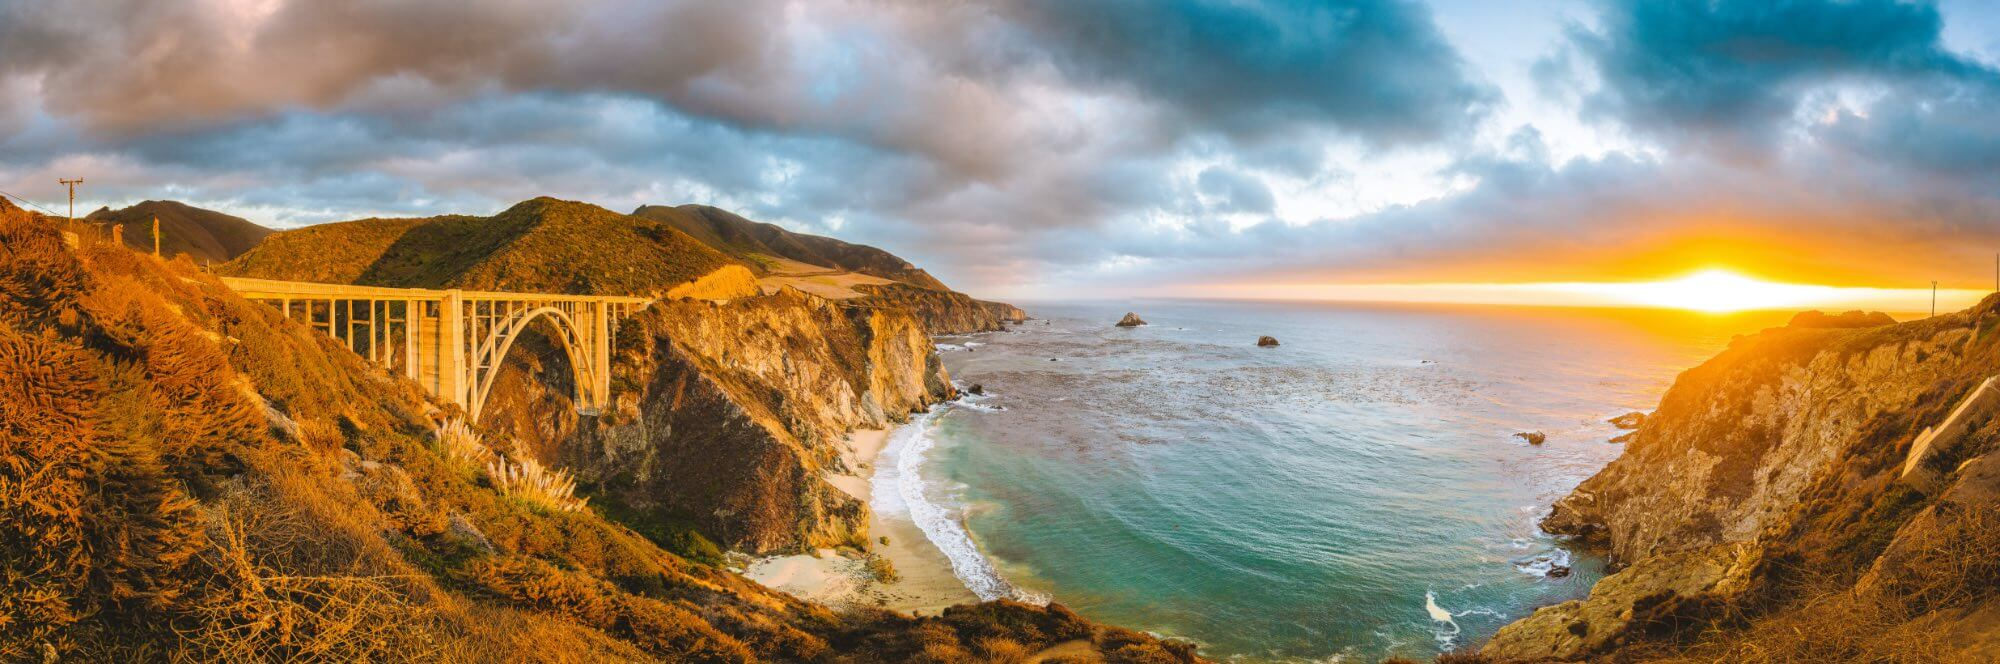 Bixby Bridge California USA